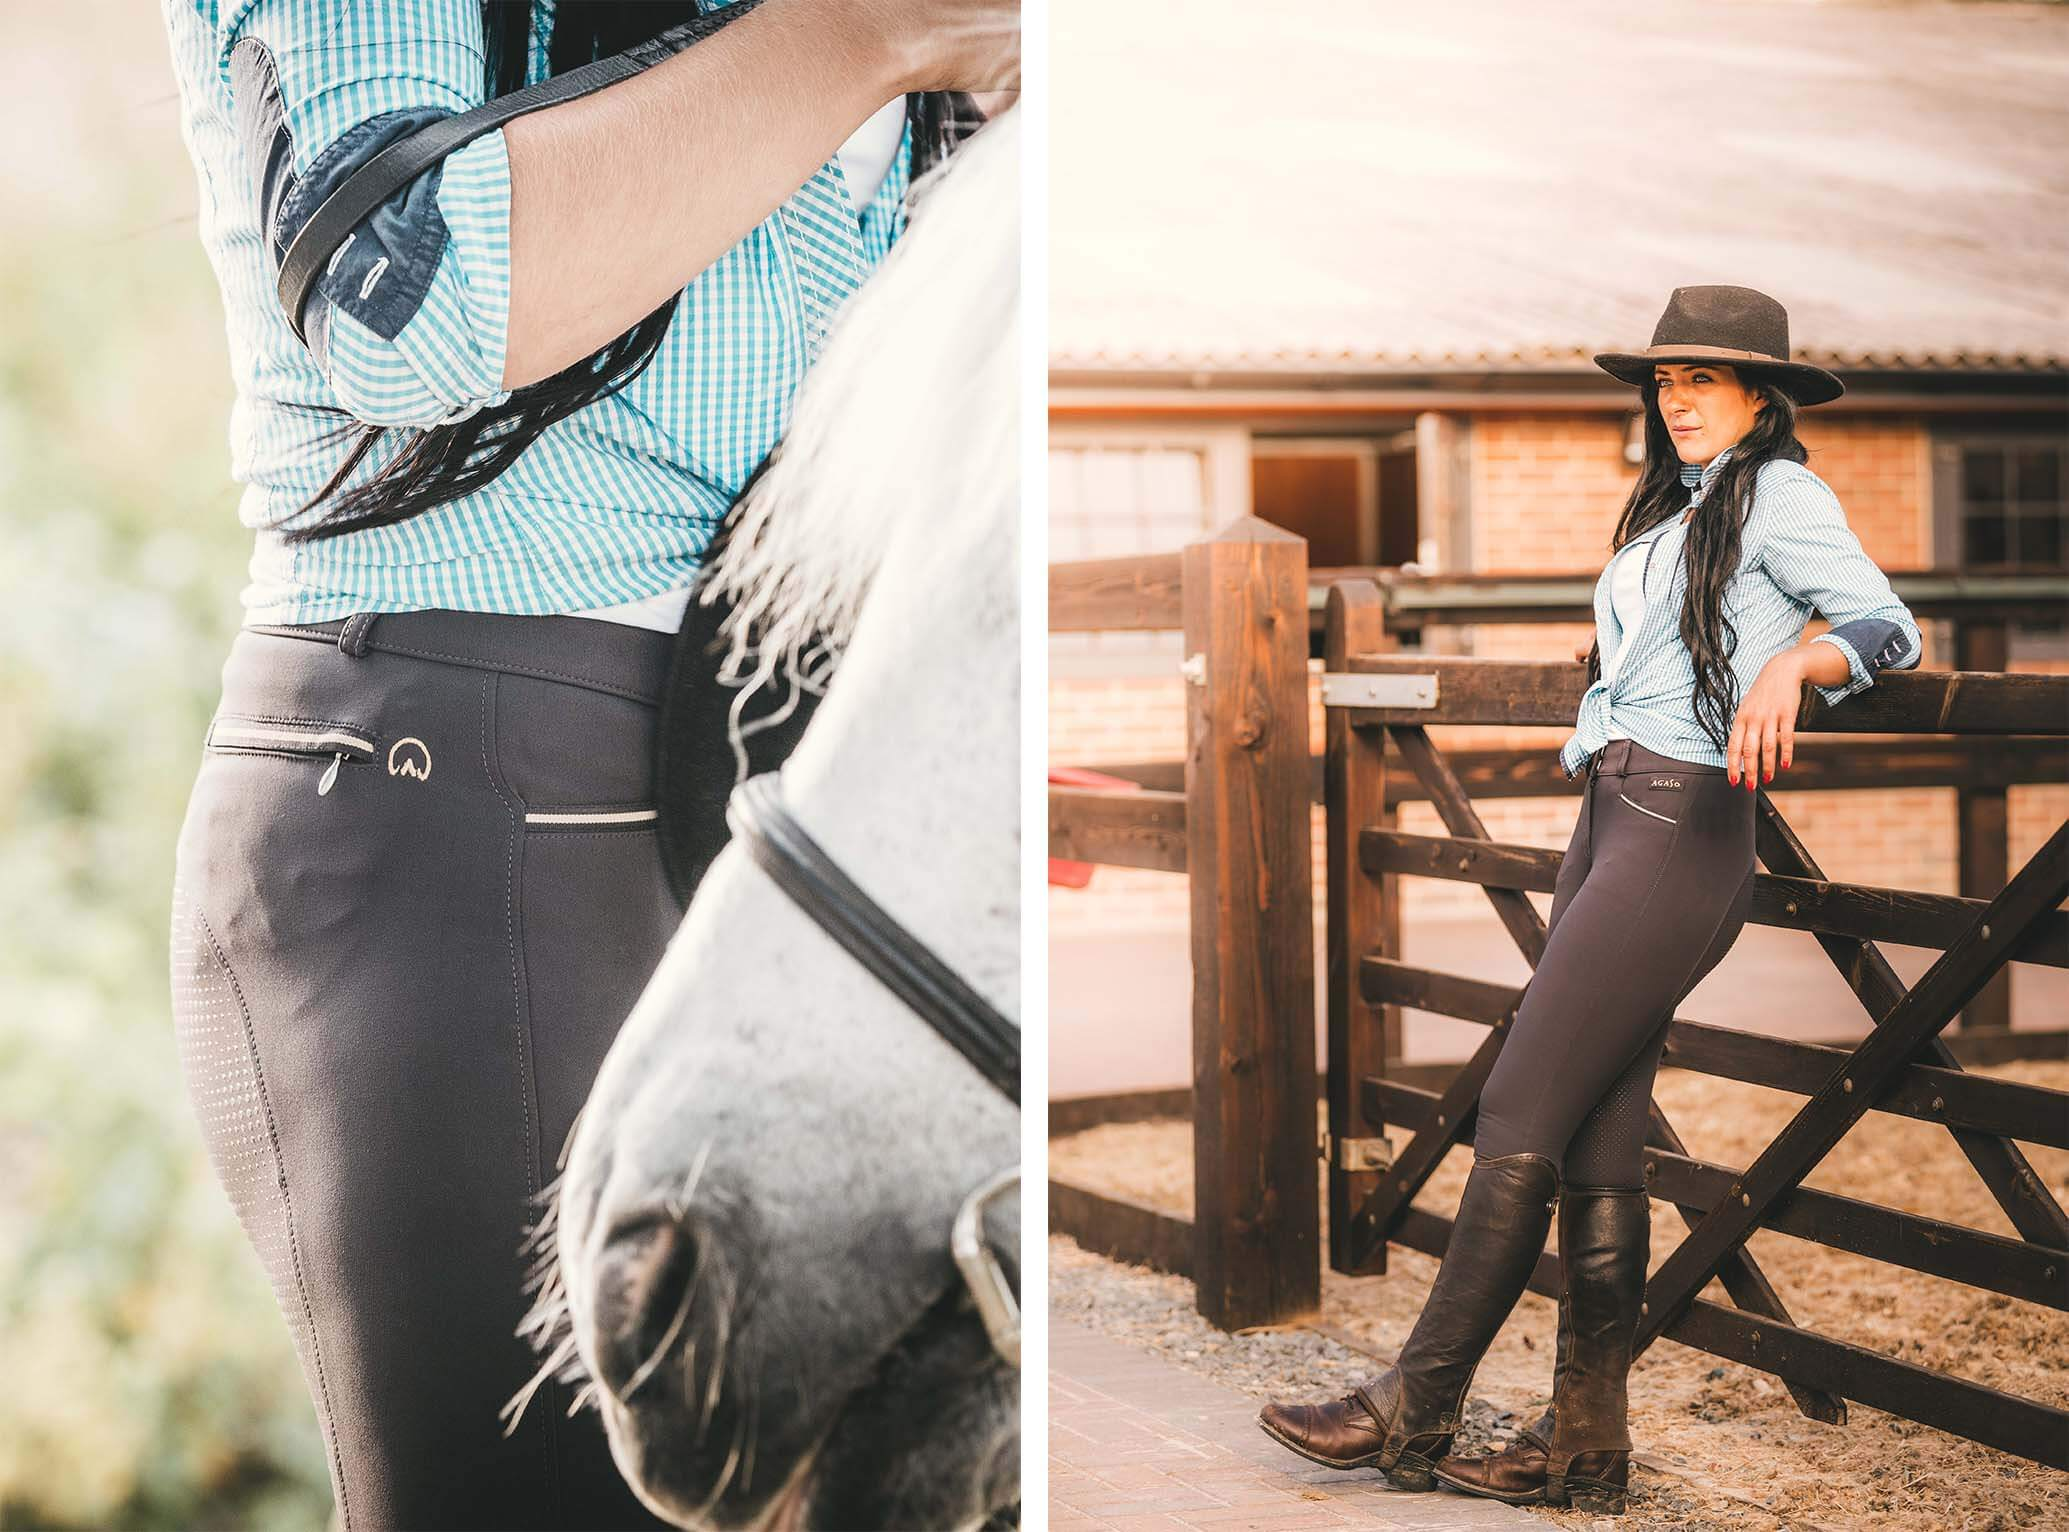 Clothing images in an equestrian setting